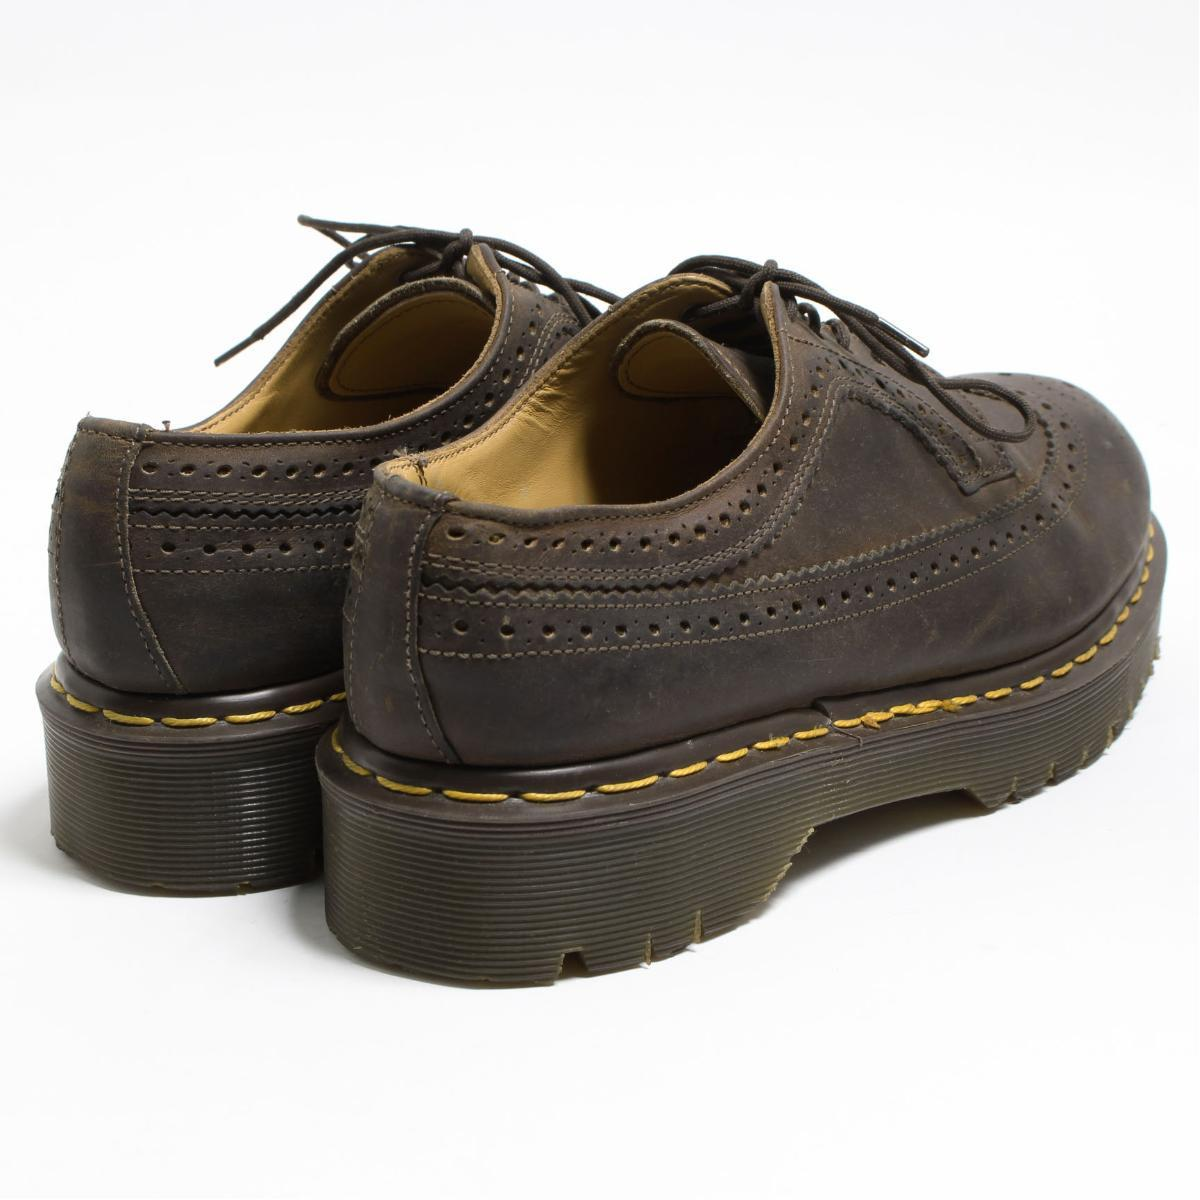 ... UK6 Lady's 24.5cm /bon8622 made in the doctor Martin Dr.Martens wing tip ...